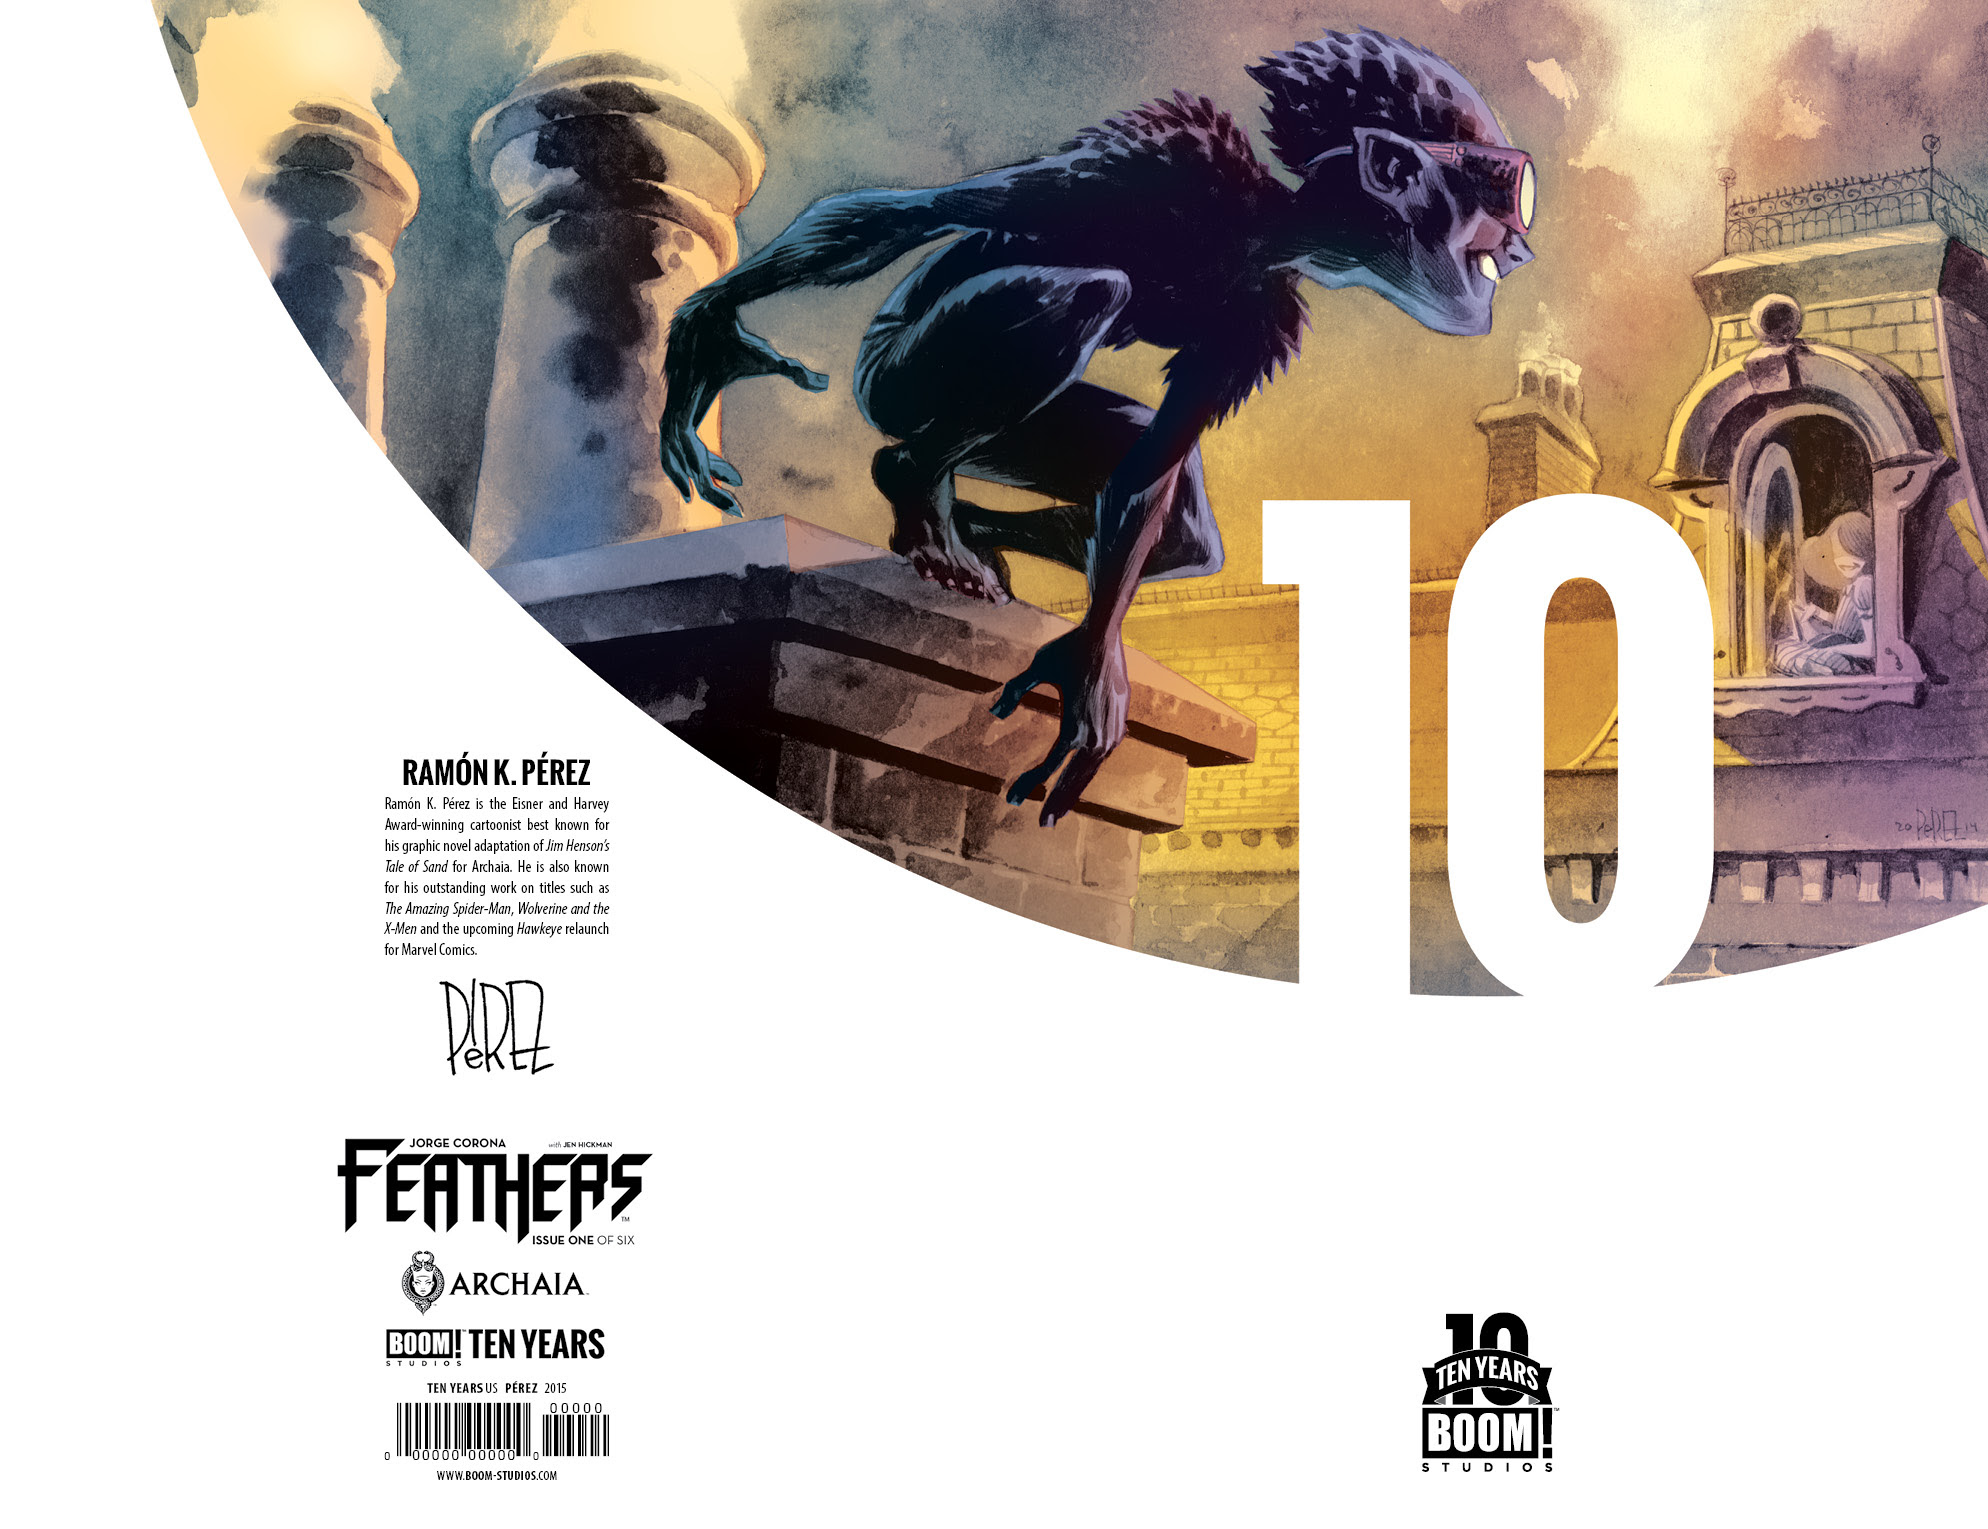 Feathers #1 10 Years Cover